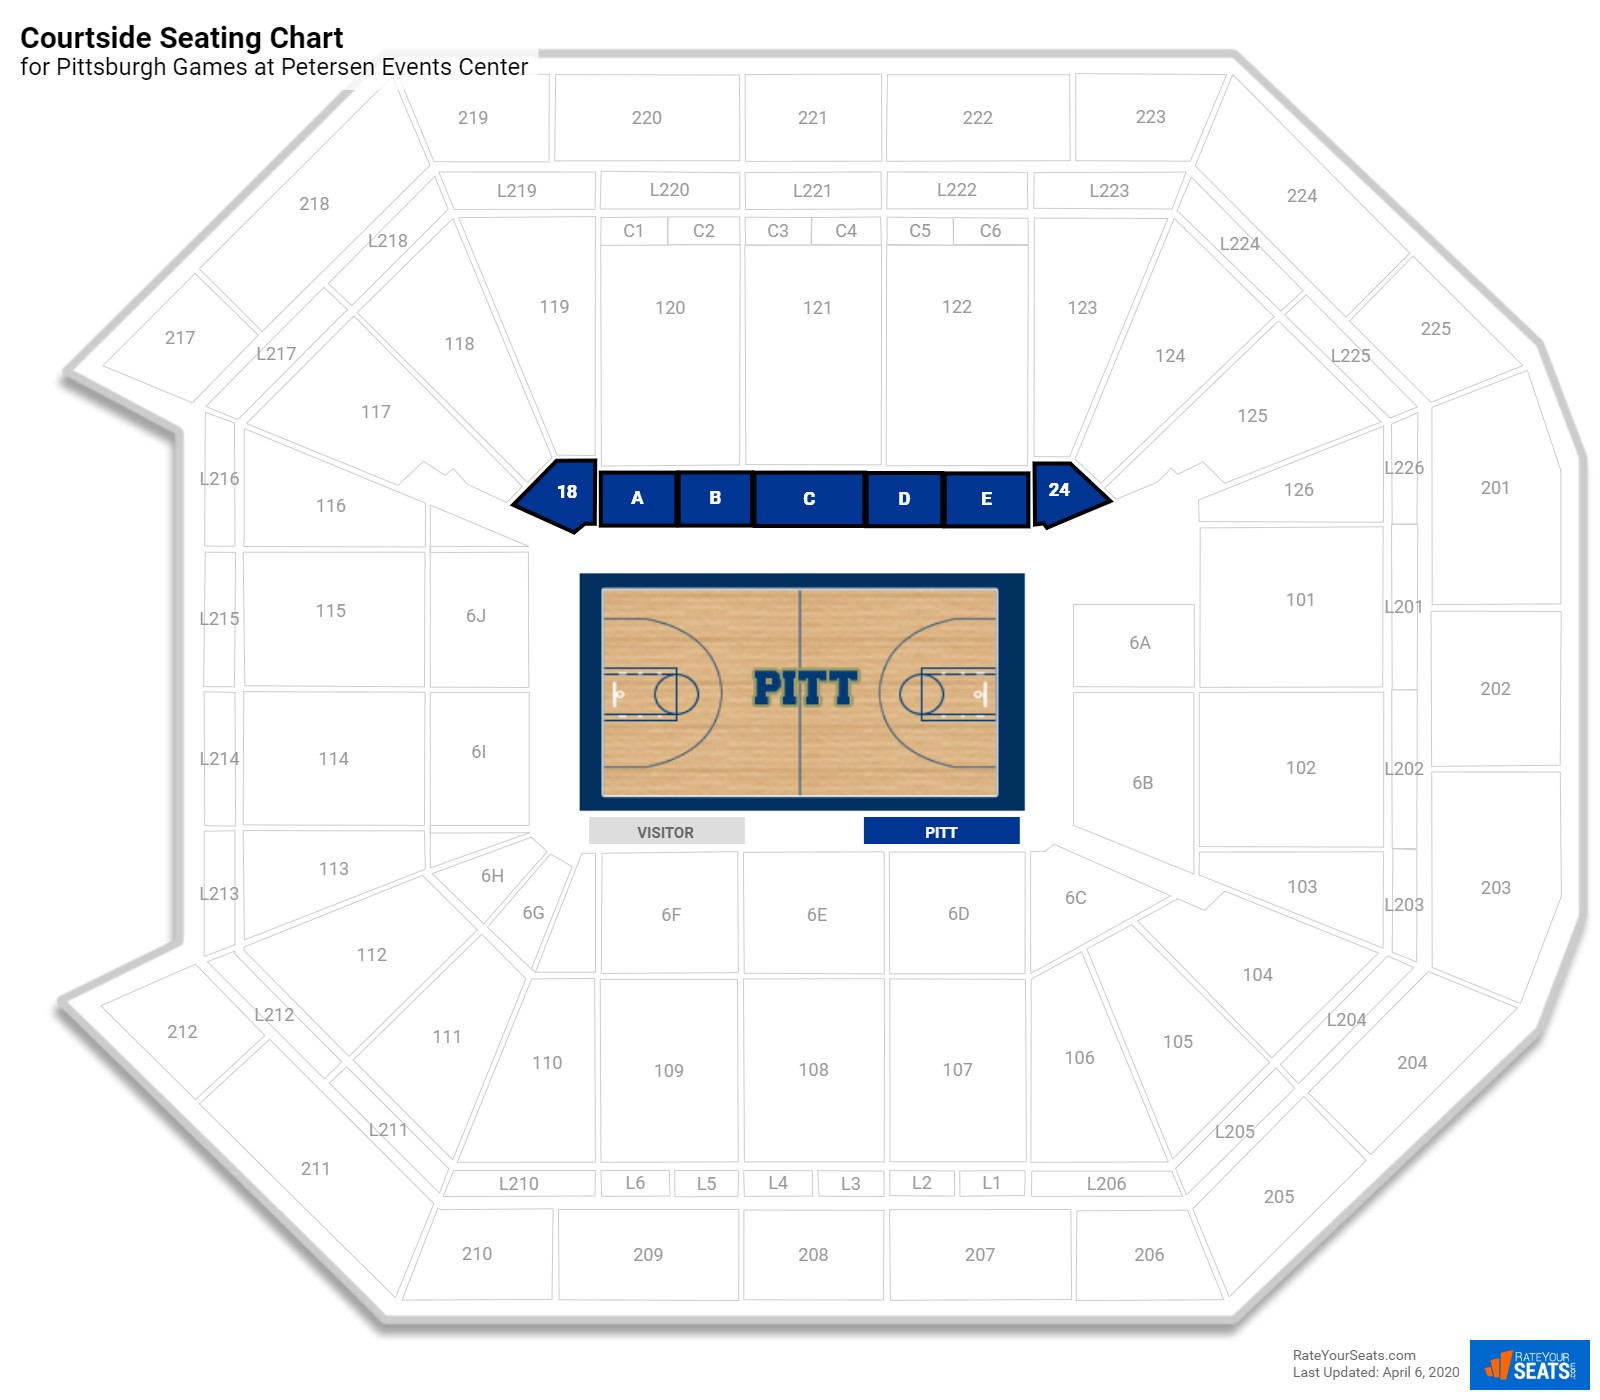 Petersen Events Center Courtside Seating Chart